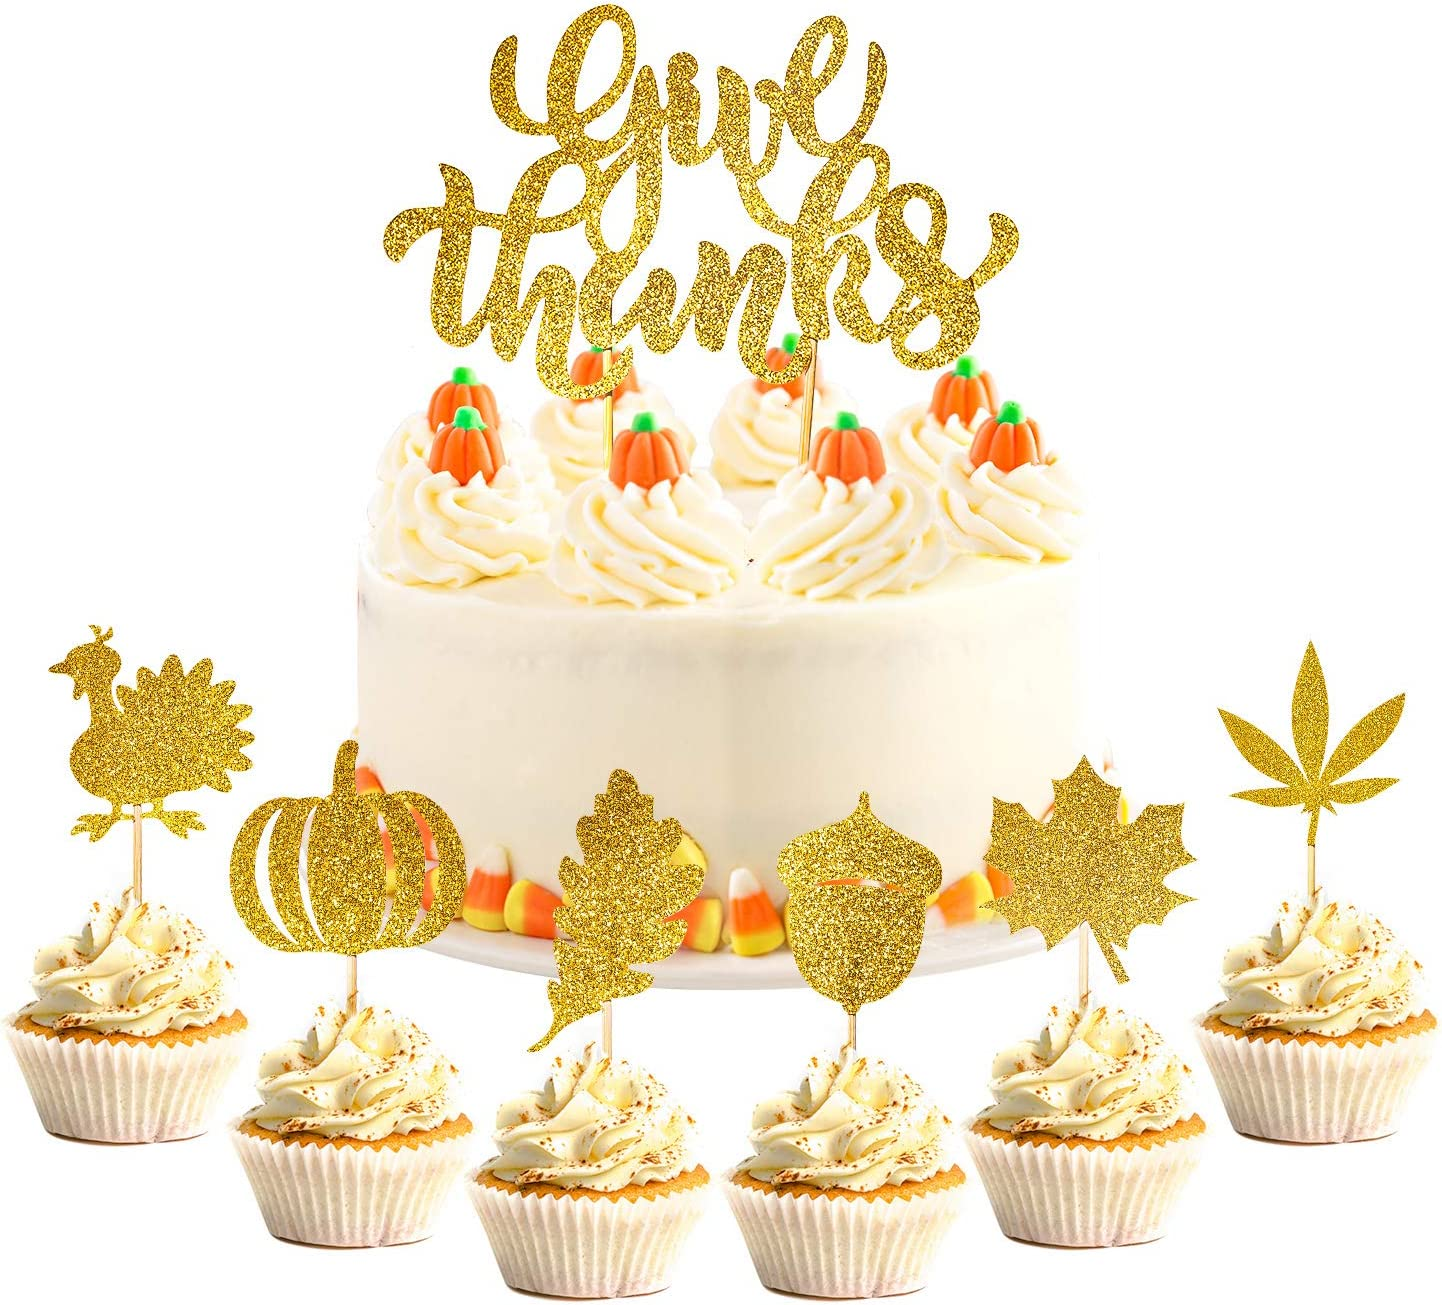 Whaline 37Pcs Fall Theme Cupcake Decoration Large Give Thanks Cake Topper Glitter Gold Turkey Maple Leaves Pumpkin Pinecone Food Picks for Autumn Thanksgiving Day Party Supplies